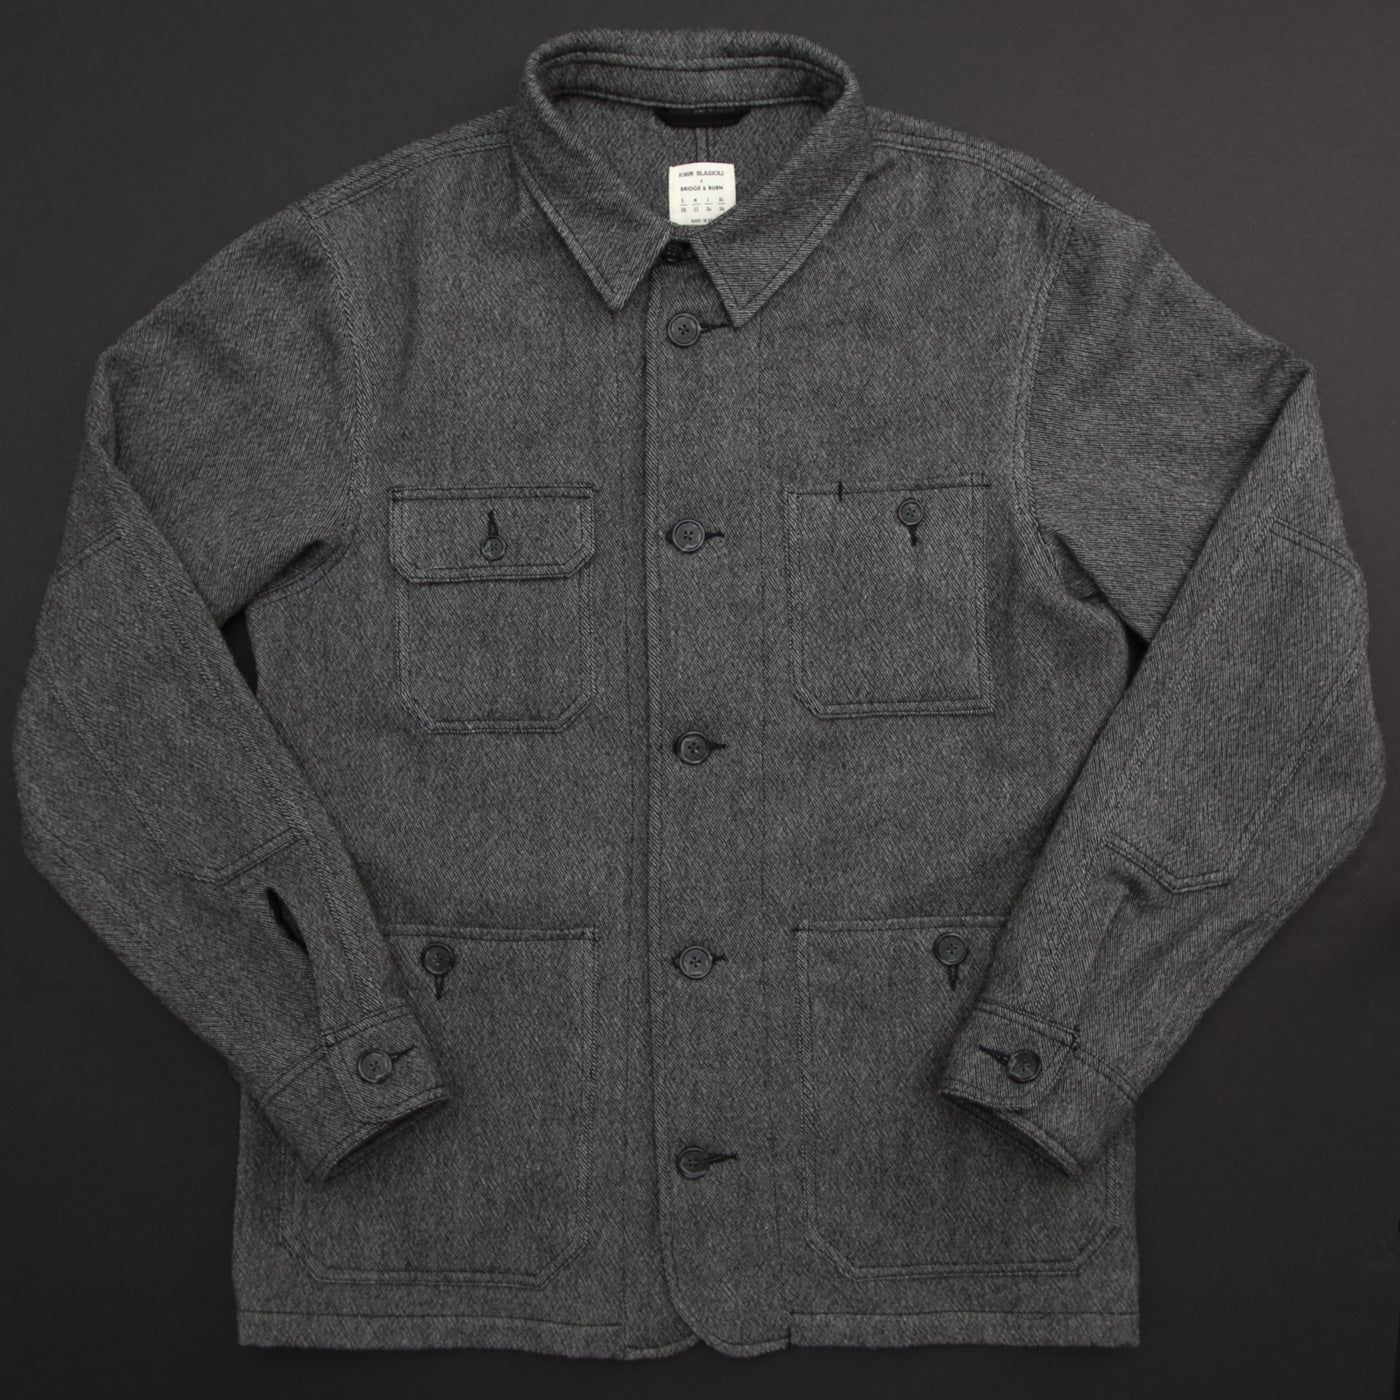 John Blasioli x Bridge & Burn Wool Overshirt